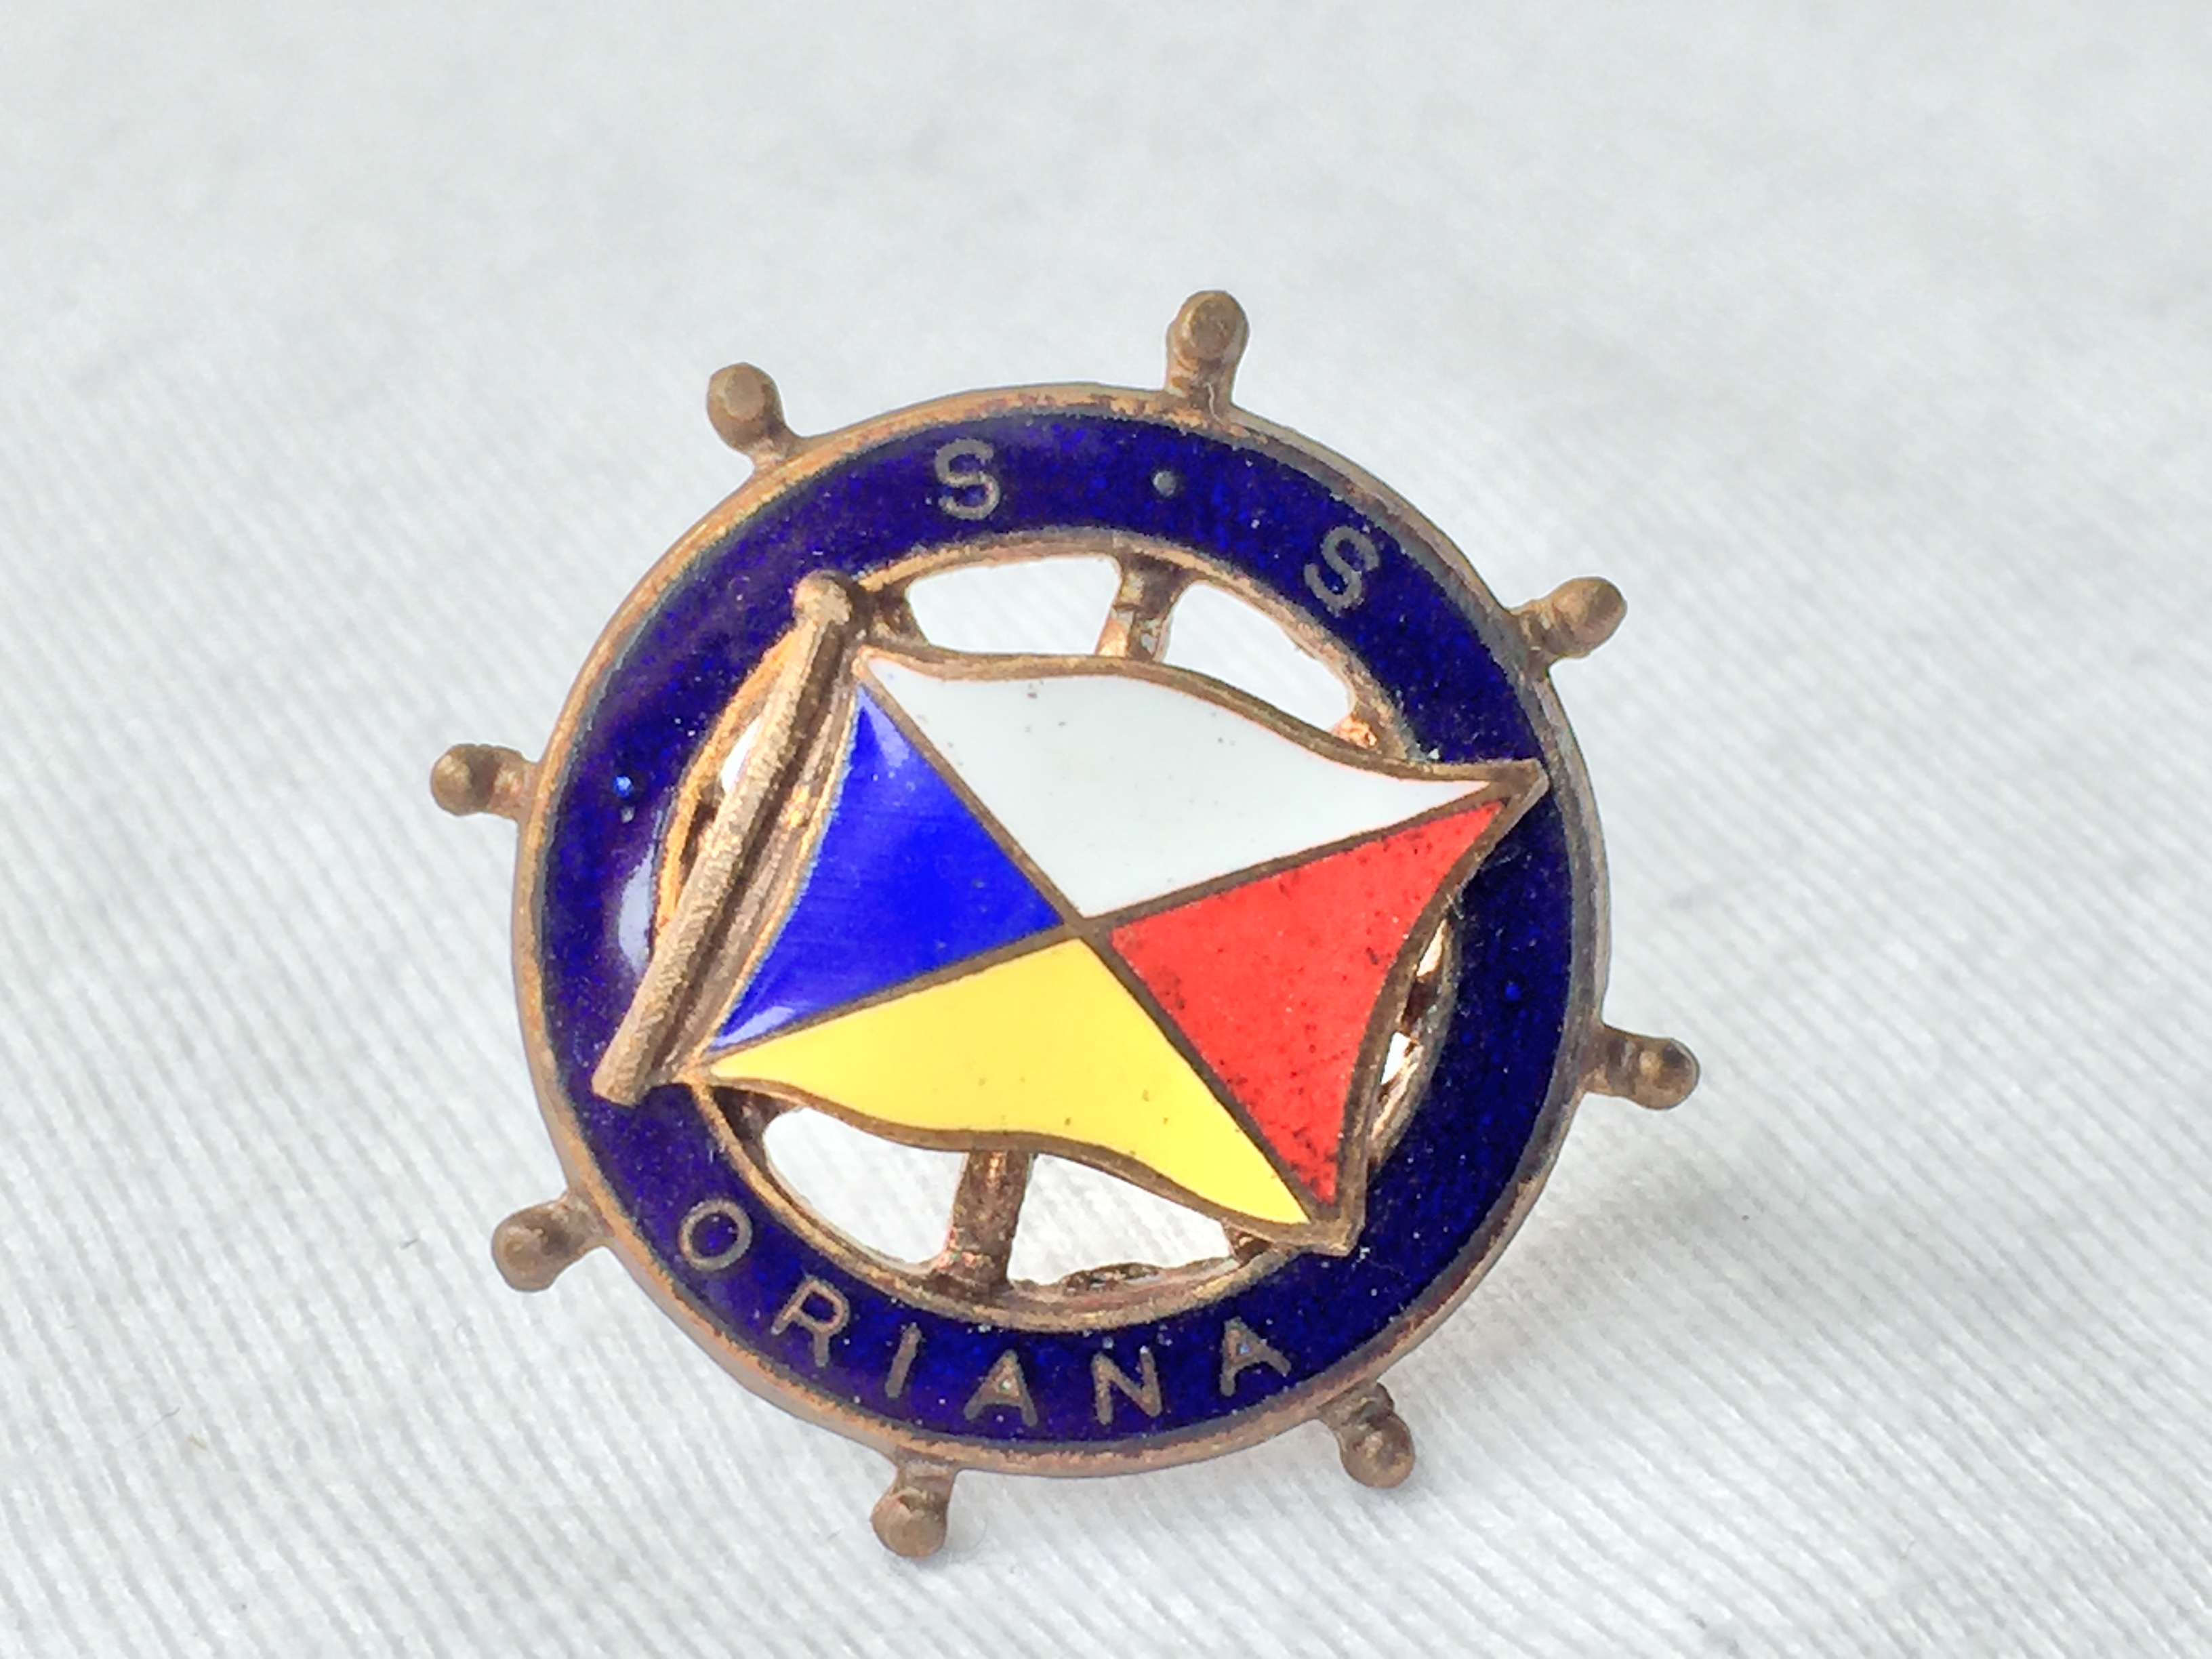 LAPEL PIN BADGE FROM THE ORIENT LINE VESSEL THE ORIANA 1960-1980